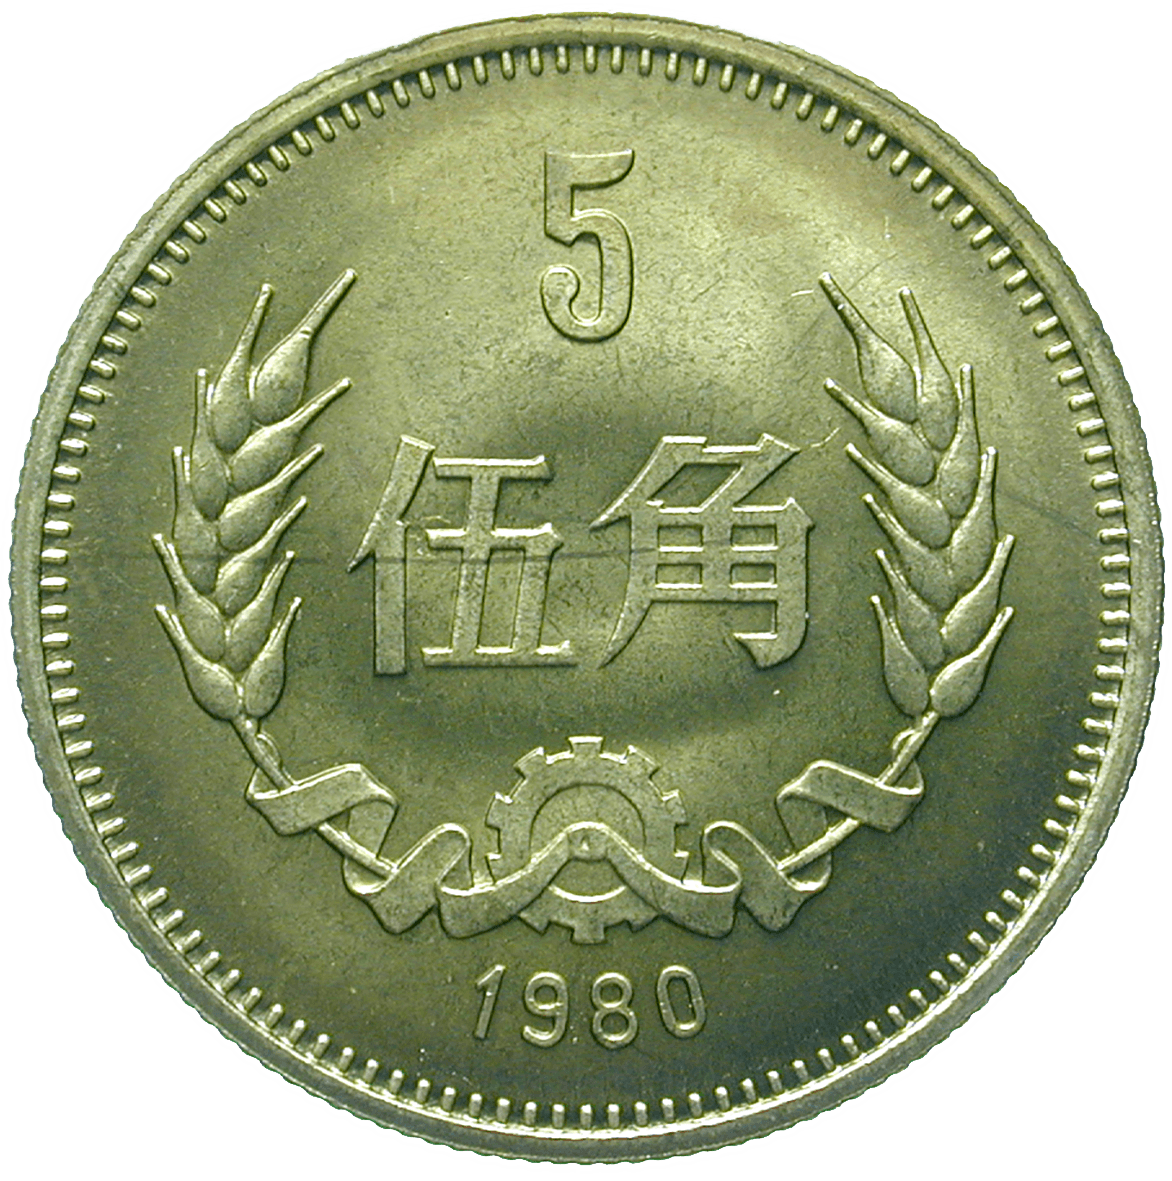 People's Republic of China, 5 Jiao 1980 (reverse)